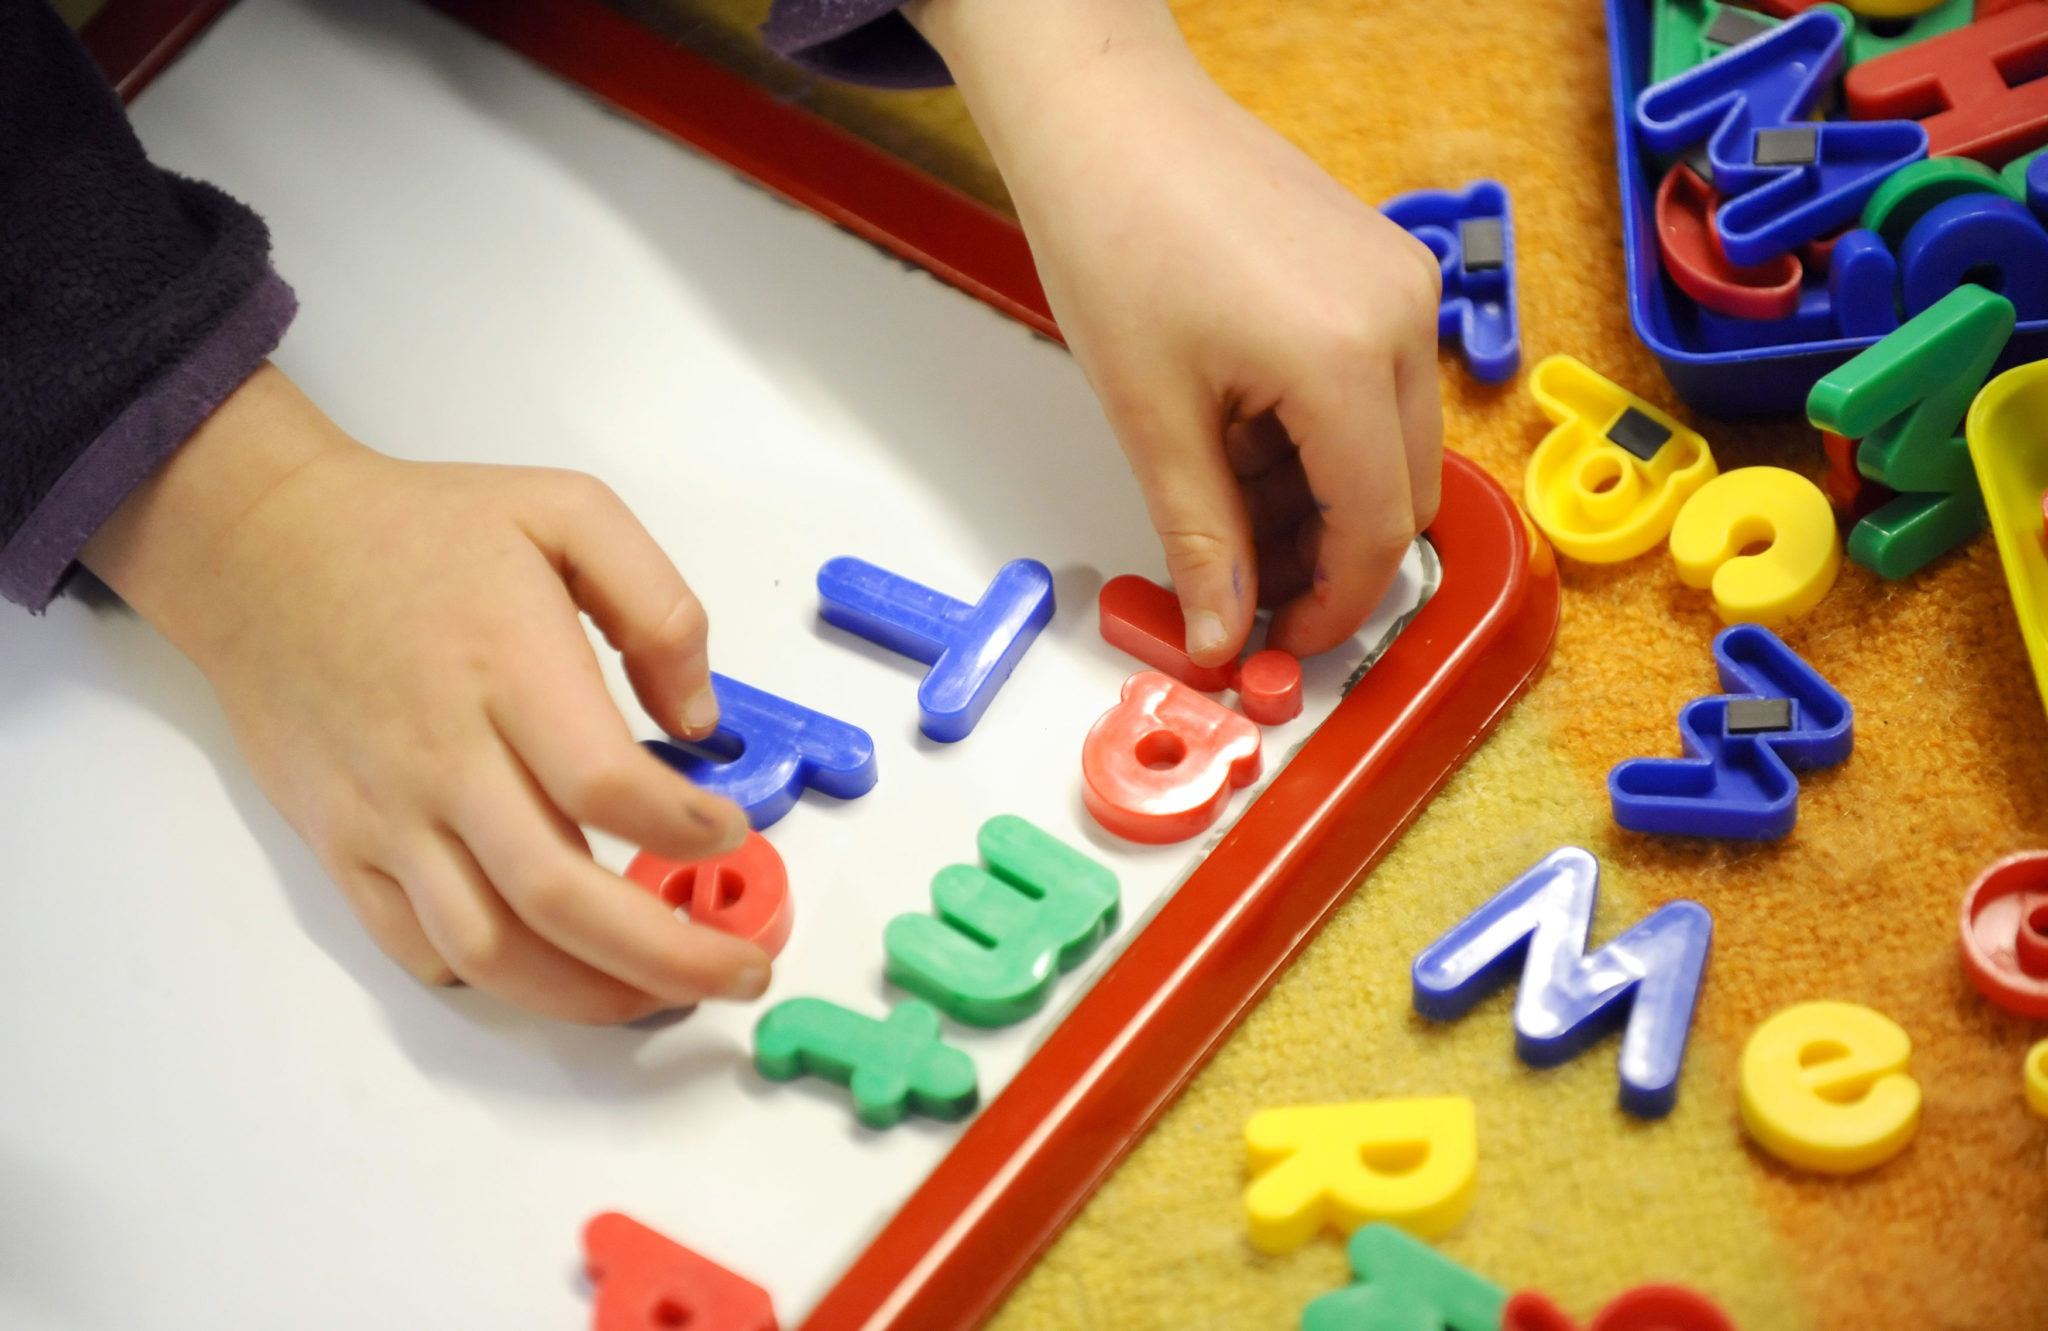 Families Say Cost Is Mean Reason For Unmet Childcare Needs